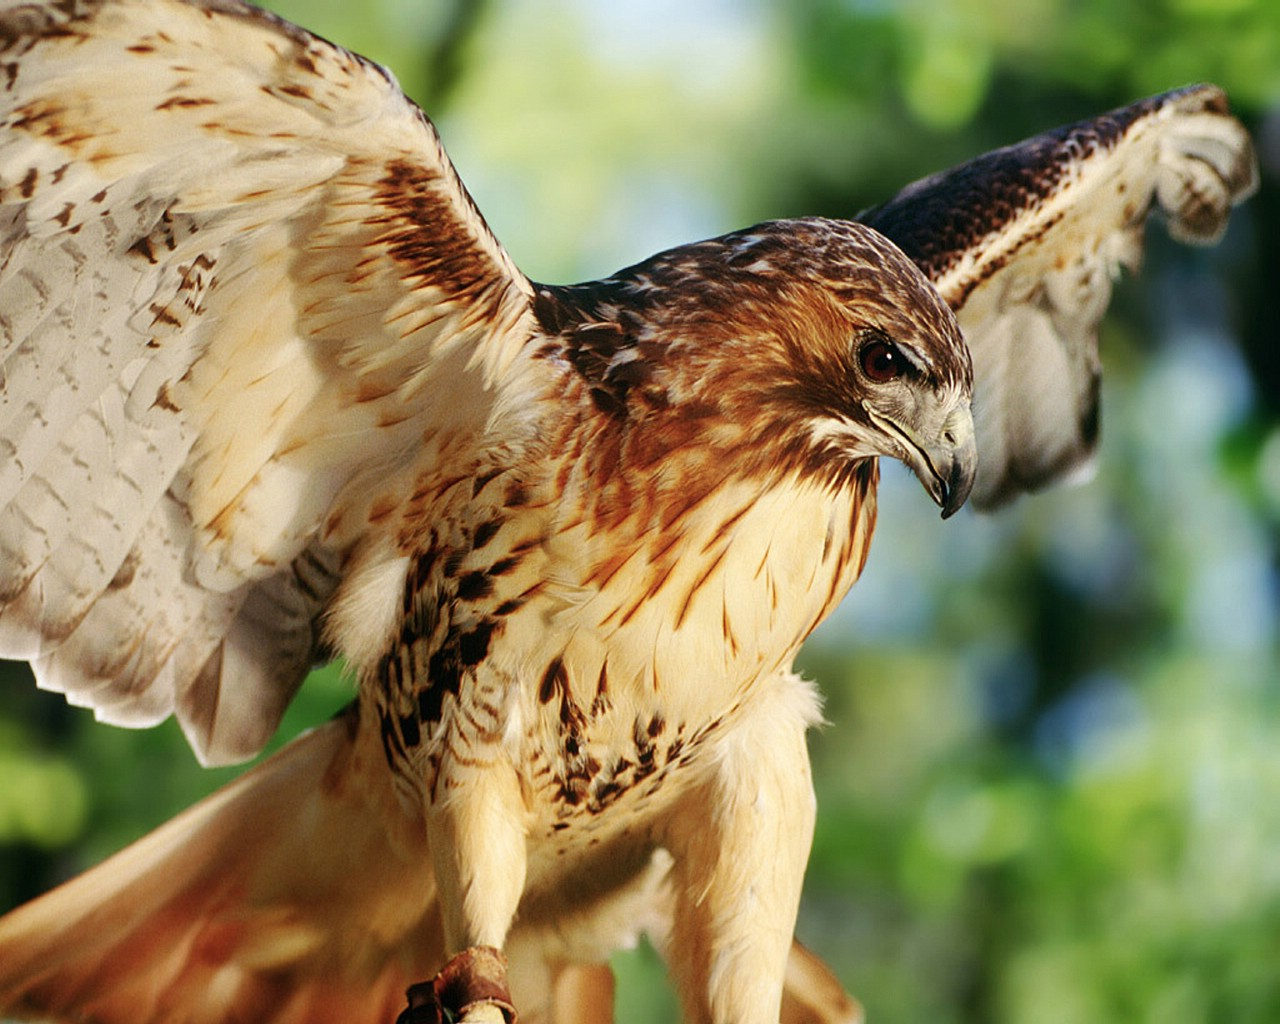 Wallpaper animals misc red tailed hawk - Red tailed hawk wallpaper ...